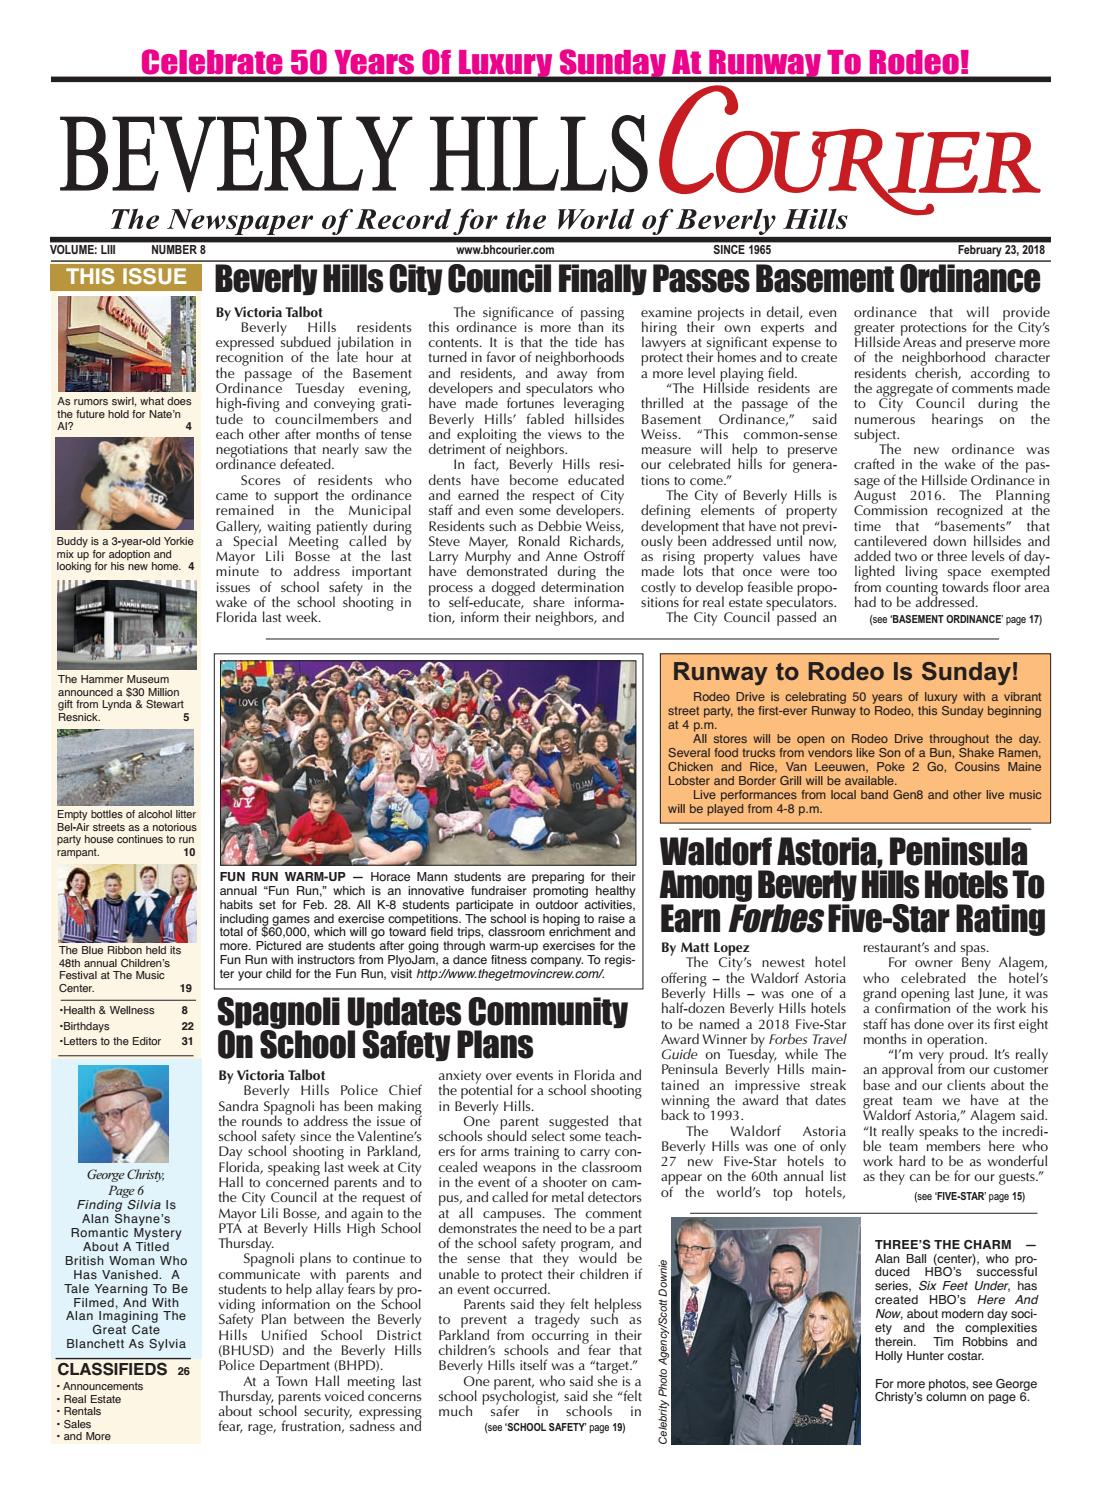 BHCourier E Edition 022318 By The Beverly Hills Courier   Issuu